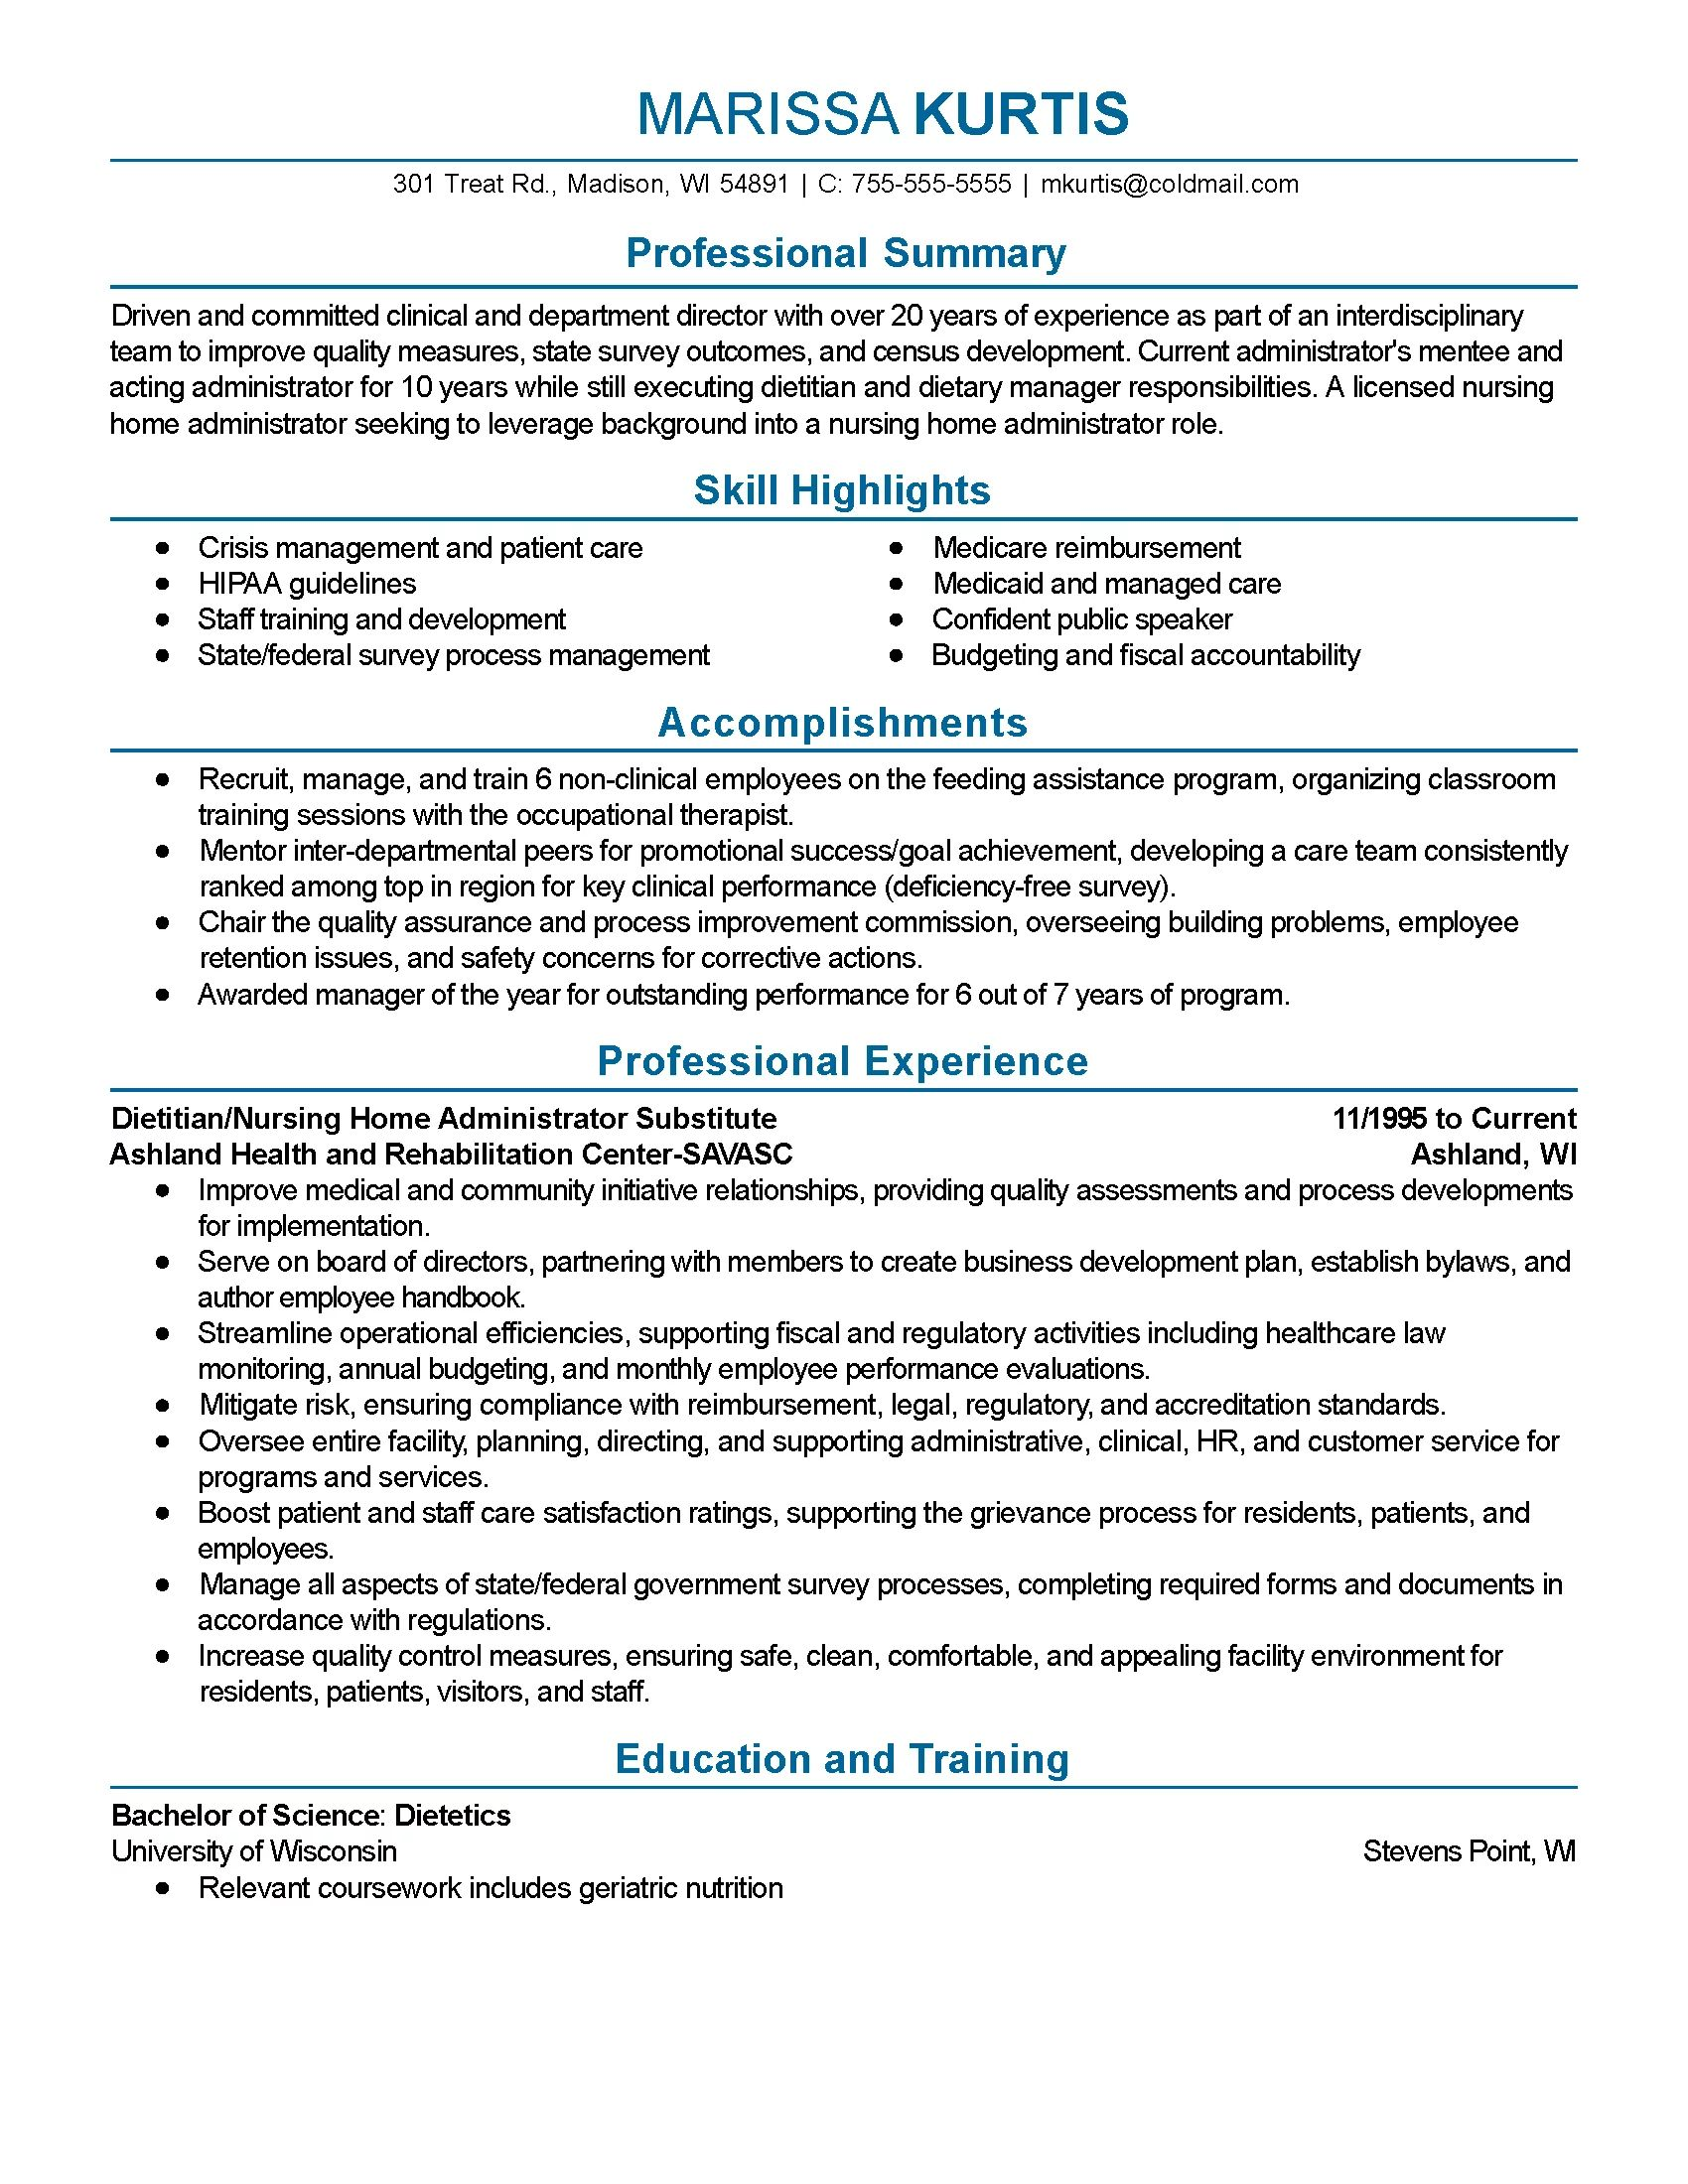 summary of qualifications resume dietitian